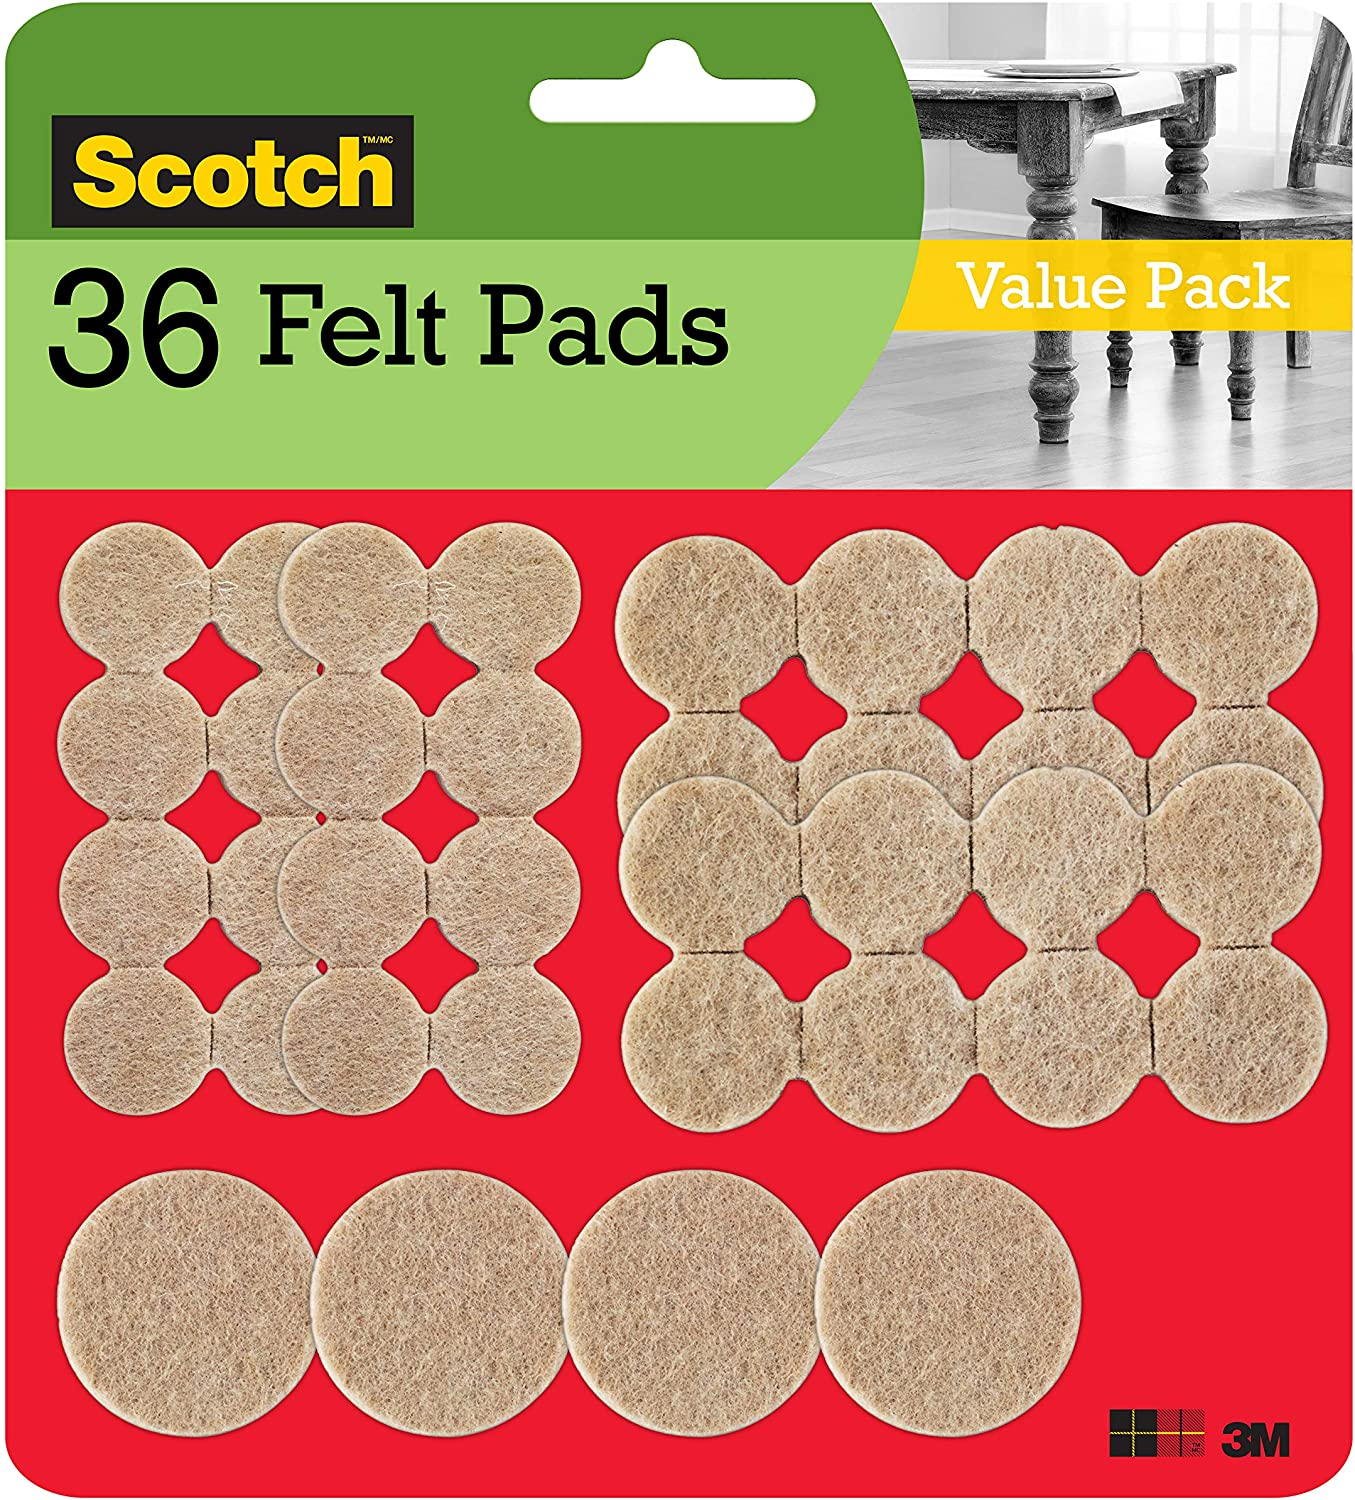 1 Beige 162 Pack Felt Pads Assorted Sizes Scotch Mounting Round Fastening /& Surface Protection SP845 Scotch Brand 3M 162 Pack for Protecting Linoleum Floors